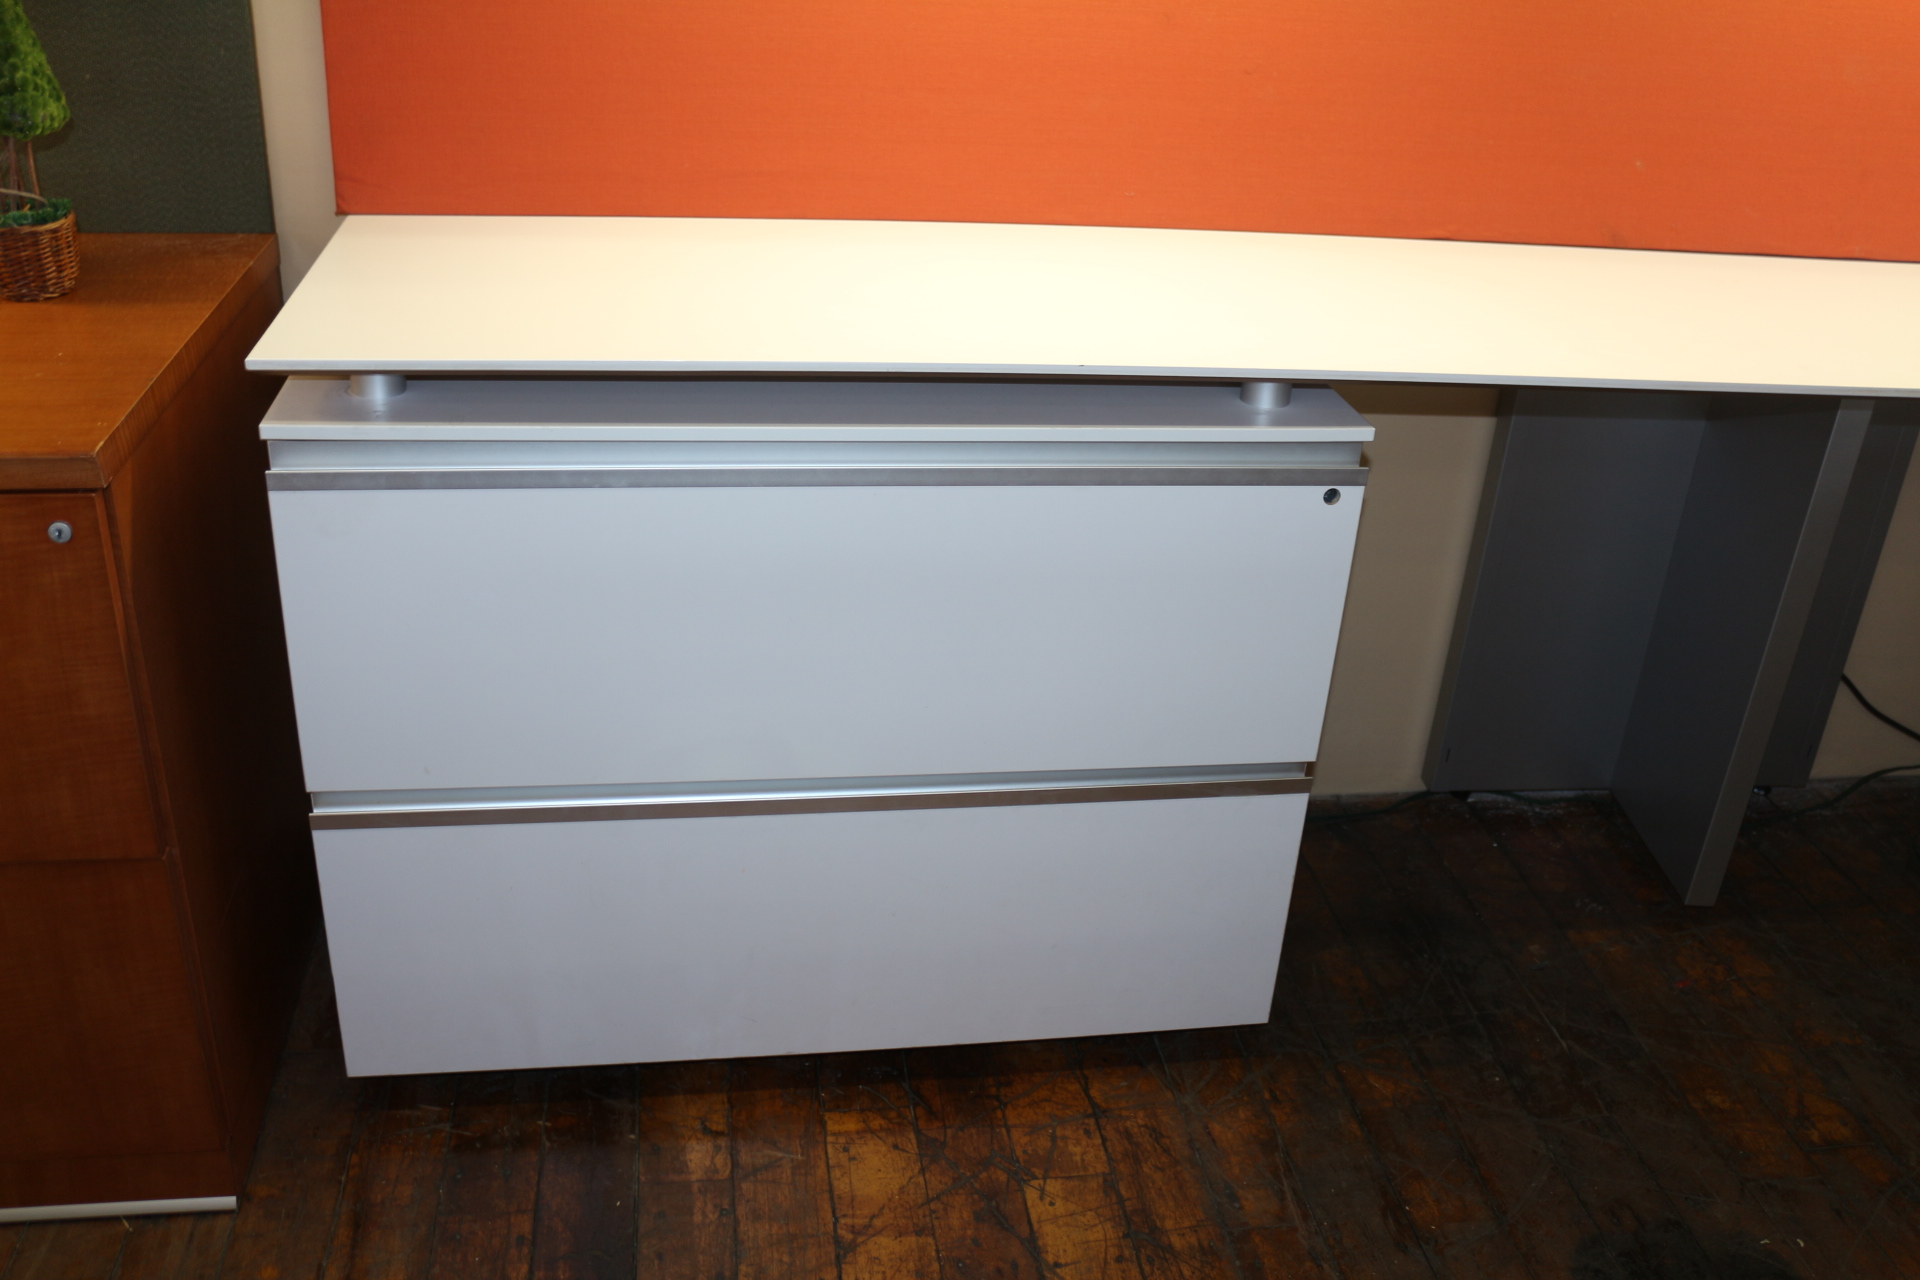 peartreeofficefurniture_peartreeofficefurniture_img_1083.jpg